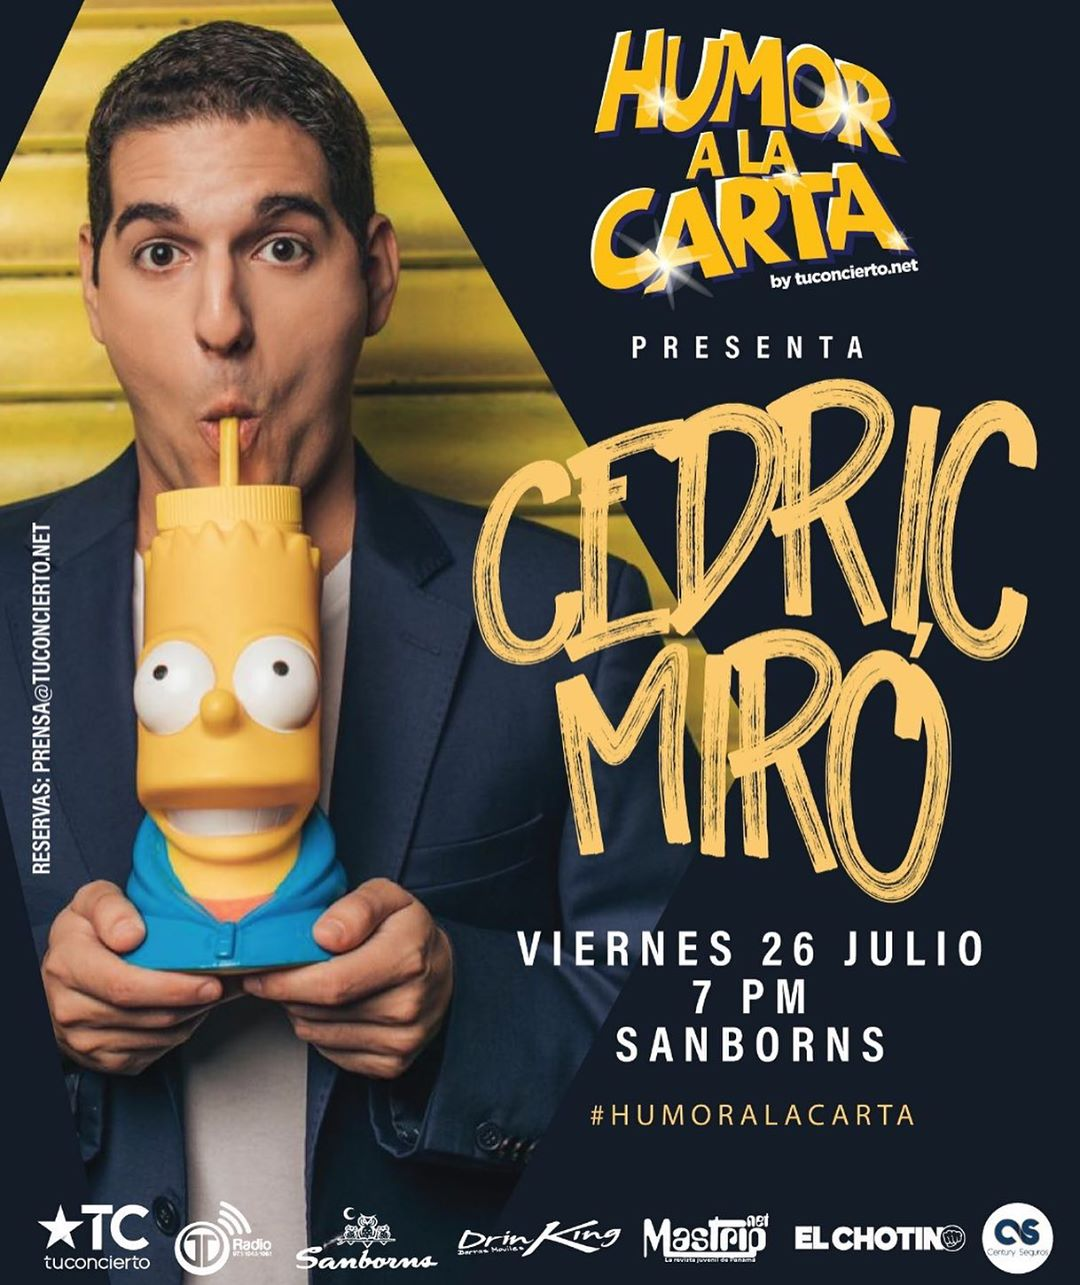 Photo of Este 2019 'Cedric Miró' regresa a Humor a la Carta by @tuconcierto